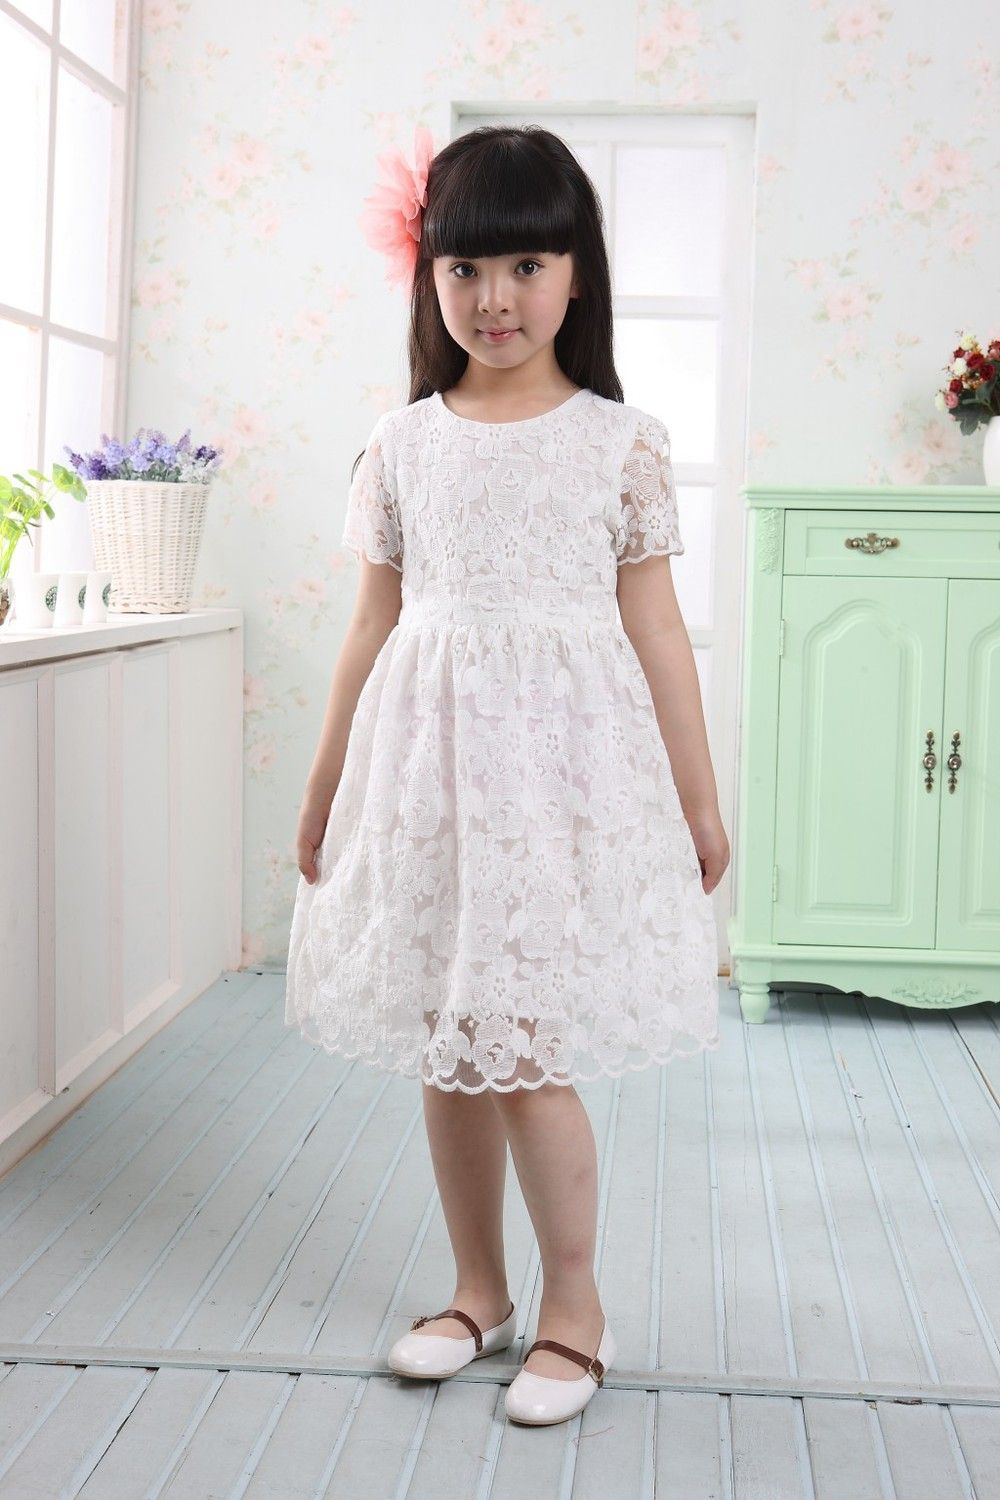 white lace dresses for girls | ... sash summer dress kids fashion ...